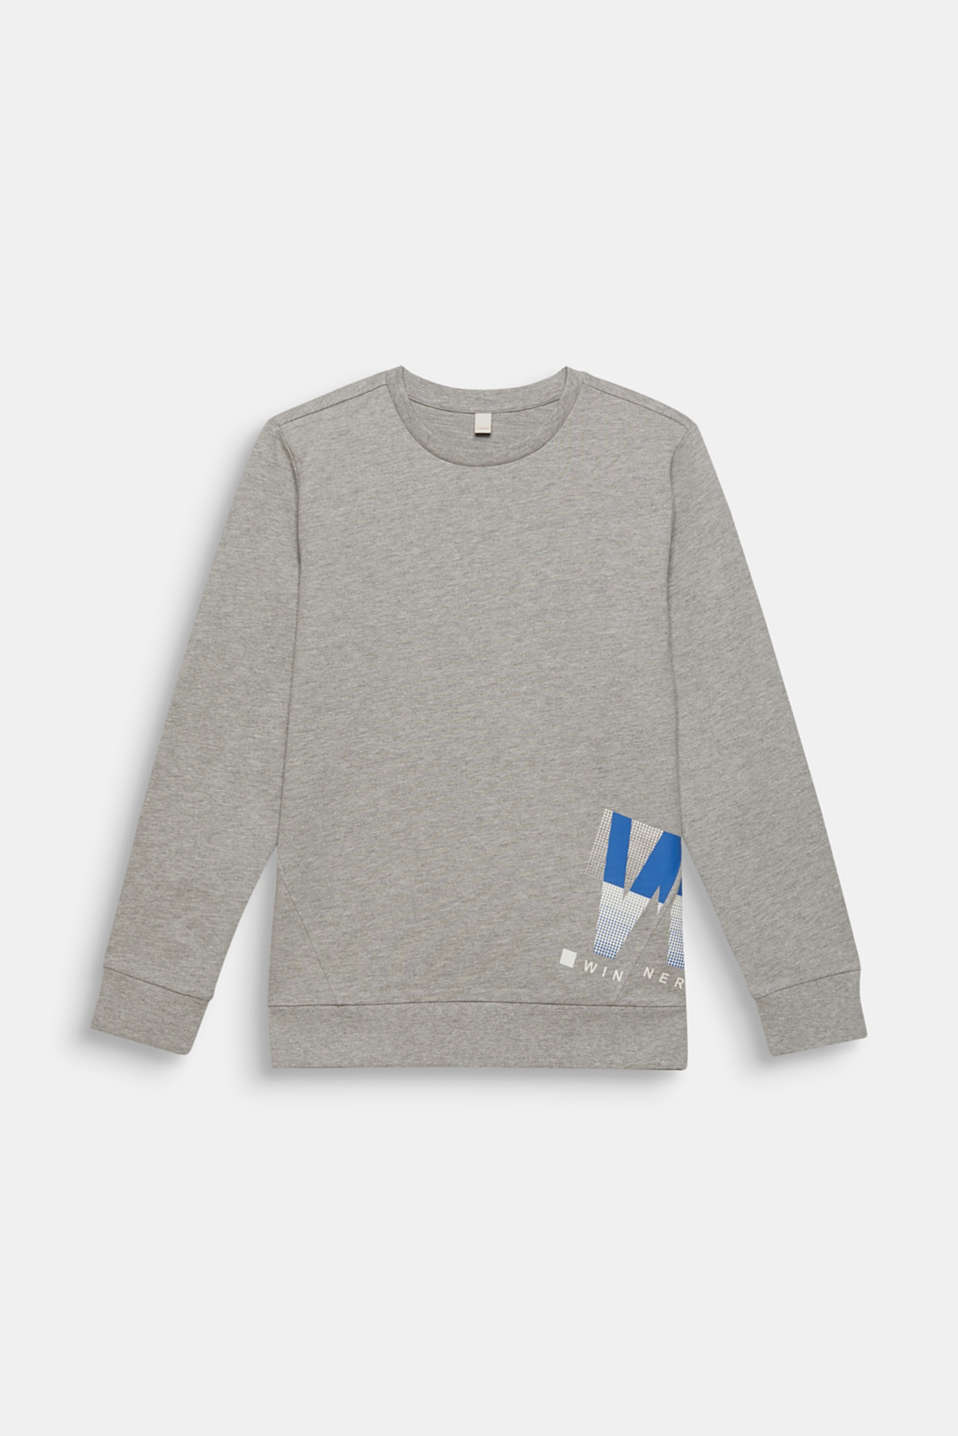 Esprit - Melange sweatshirt with a positioned print